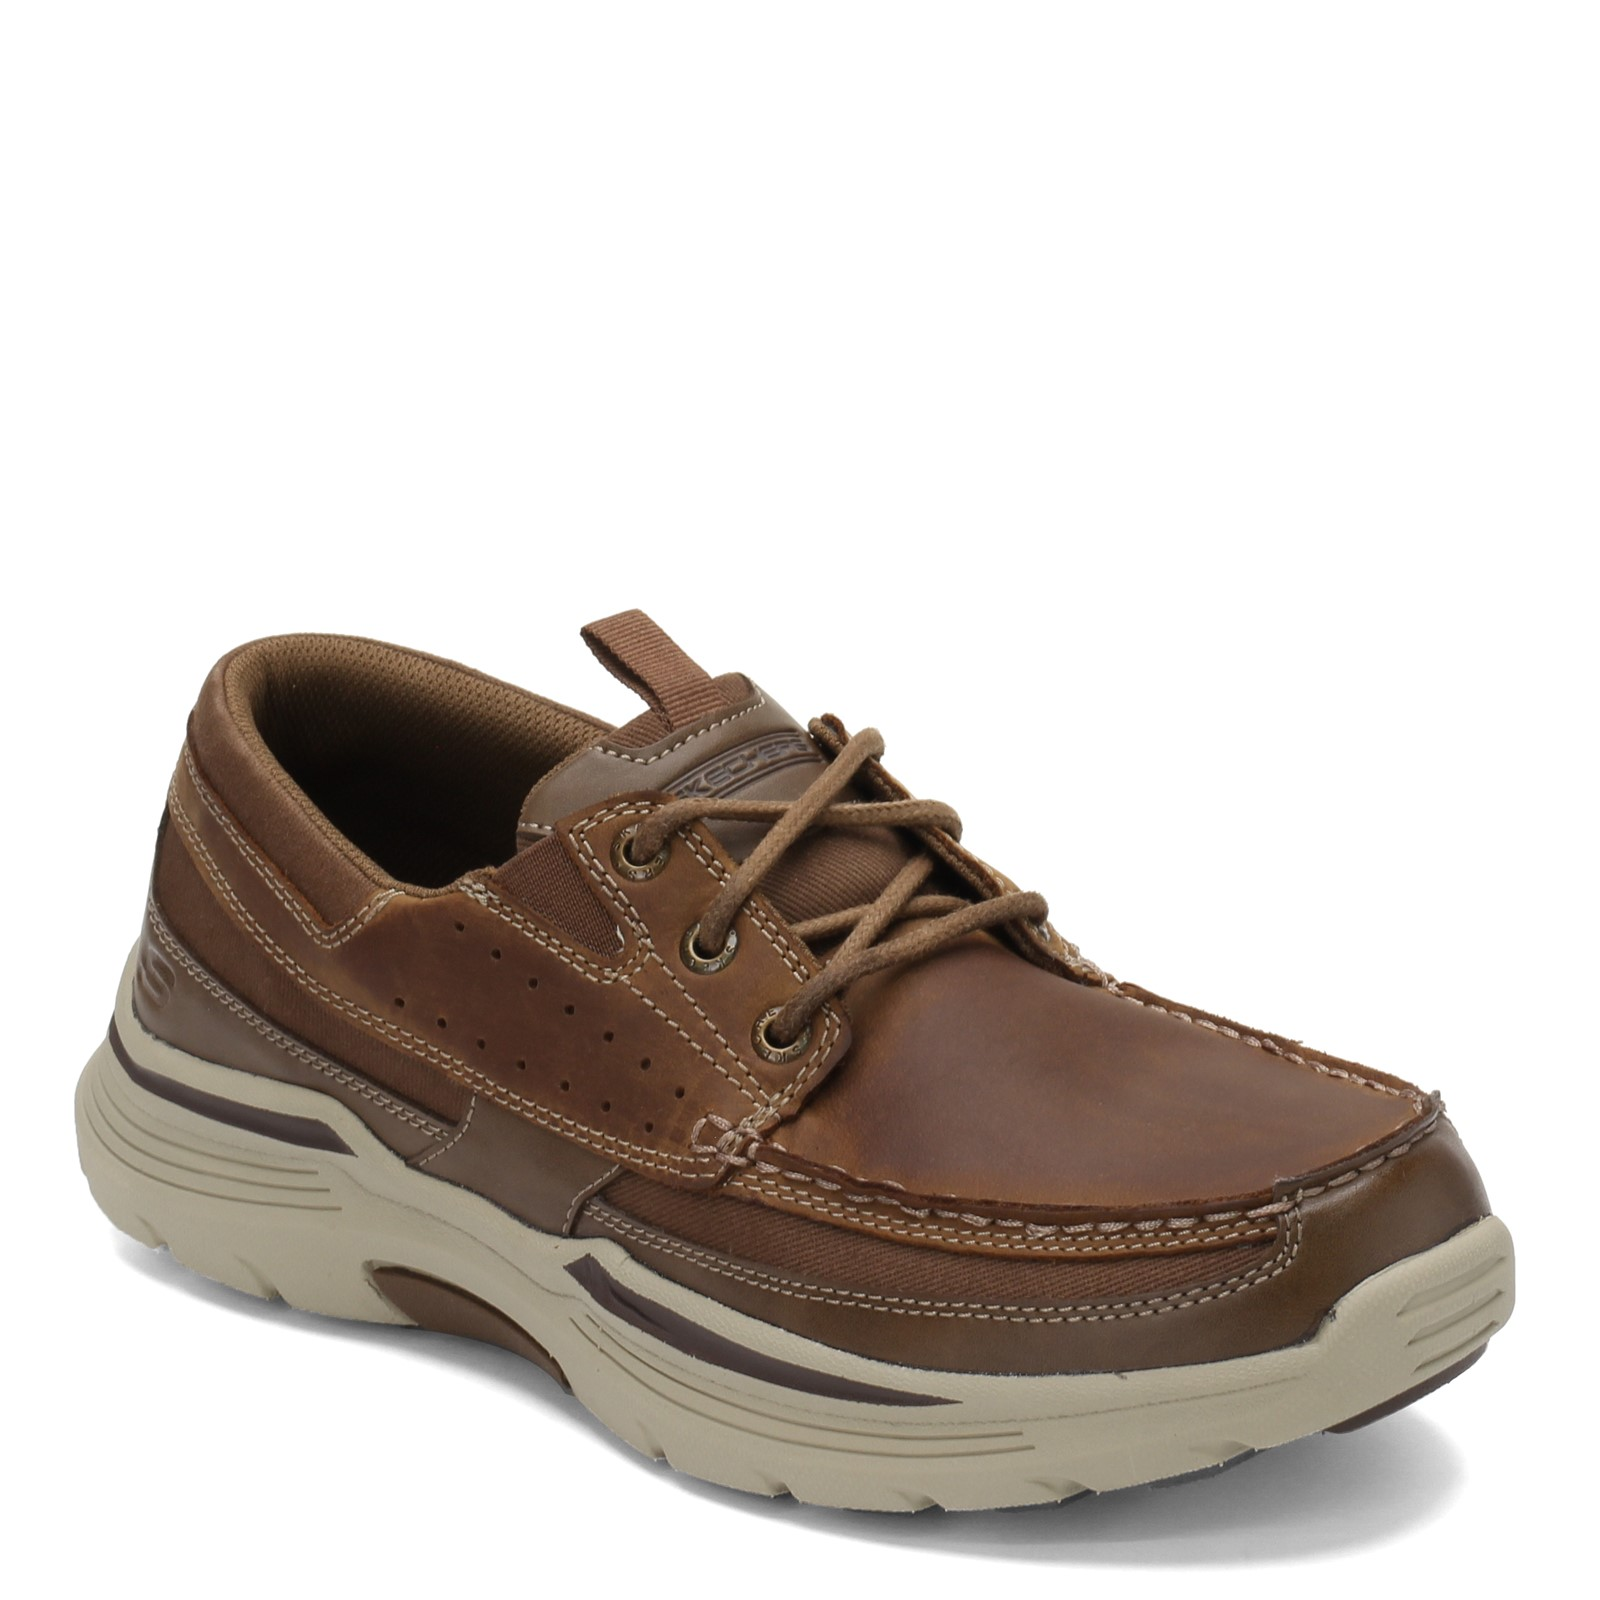 sketchers men's shoes